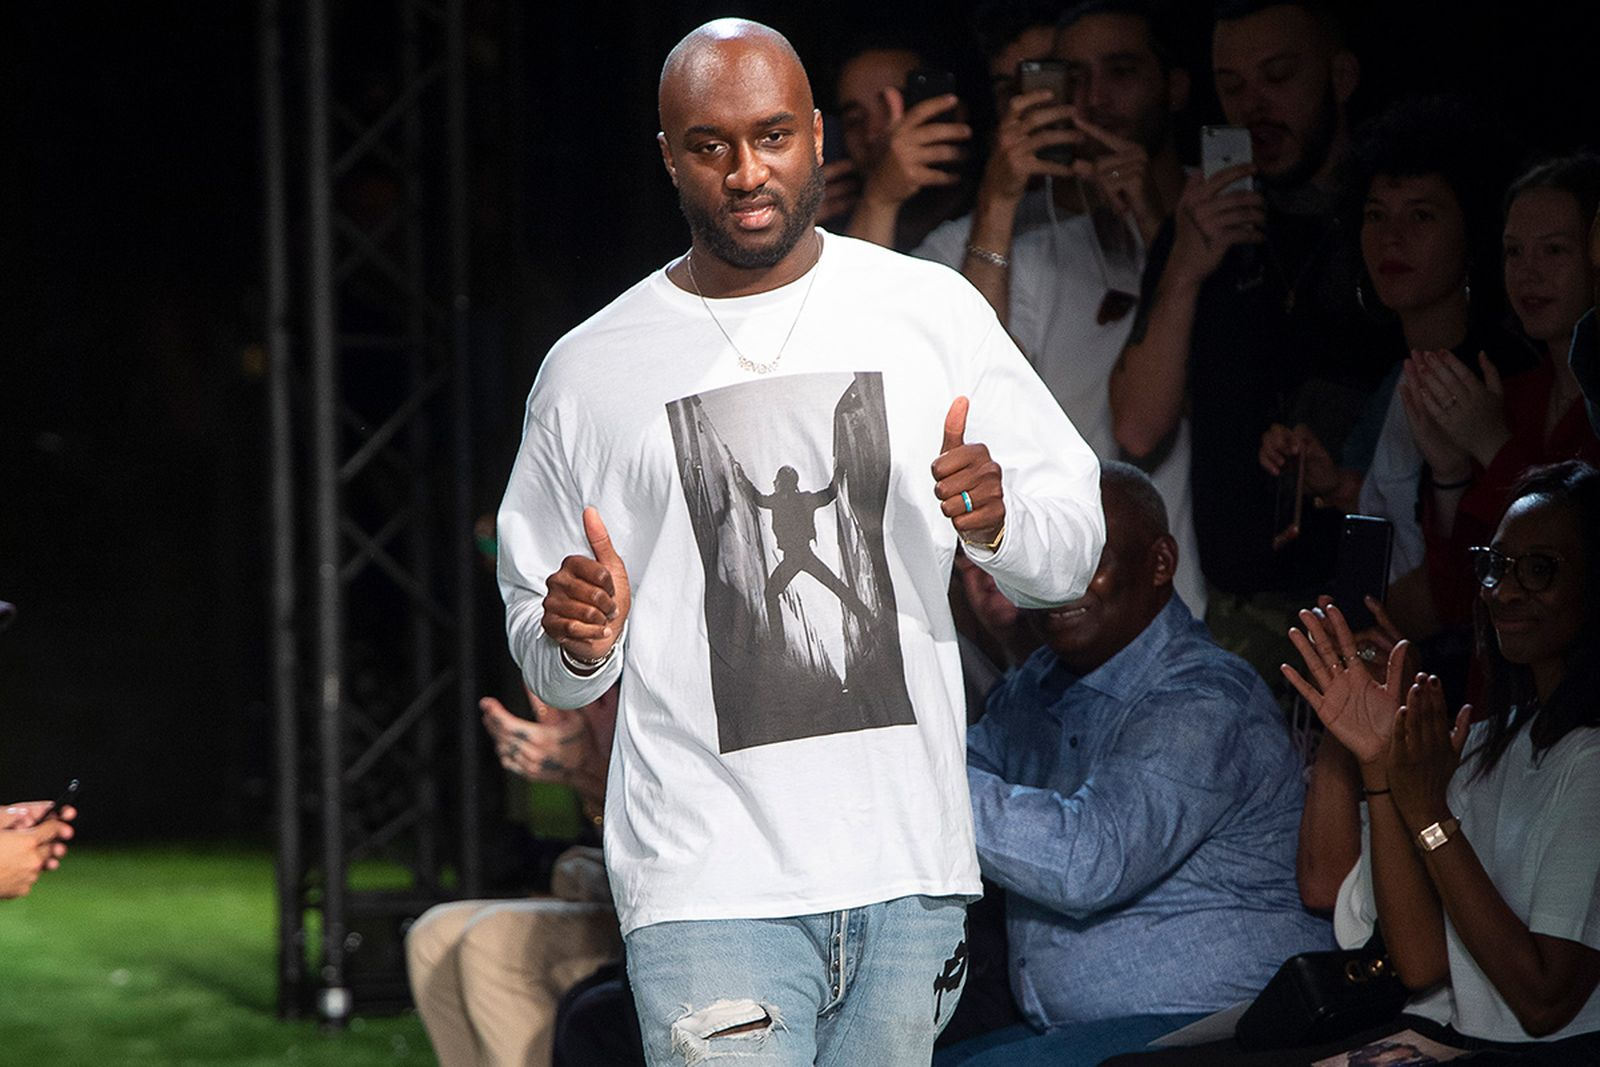 what happens to fashion week after virgil abloh main Louis Vuitton OFF-WHITE c/o Virgil Abloh ann demeulemeester